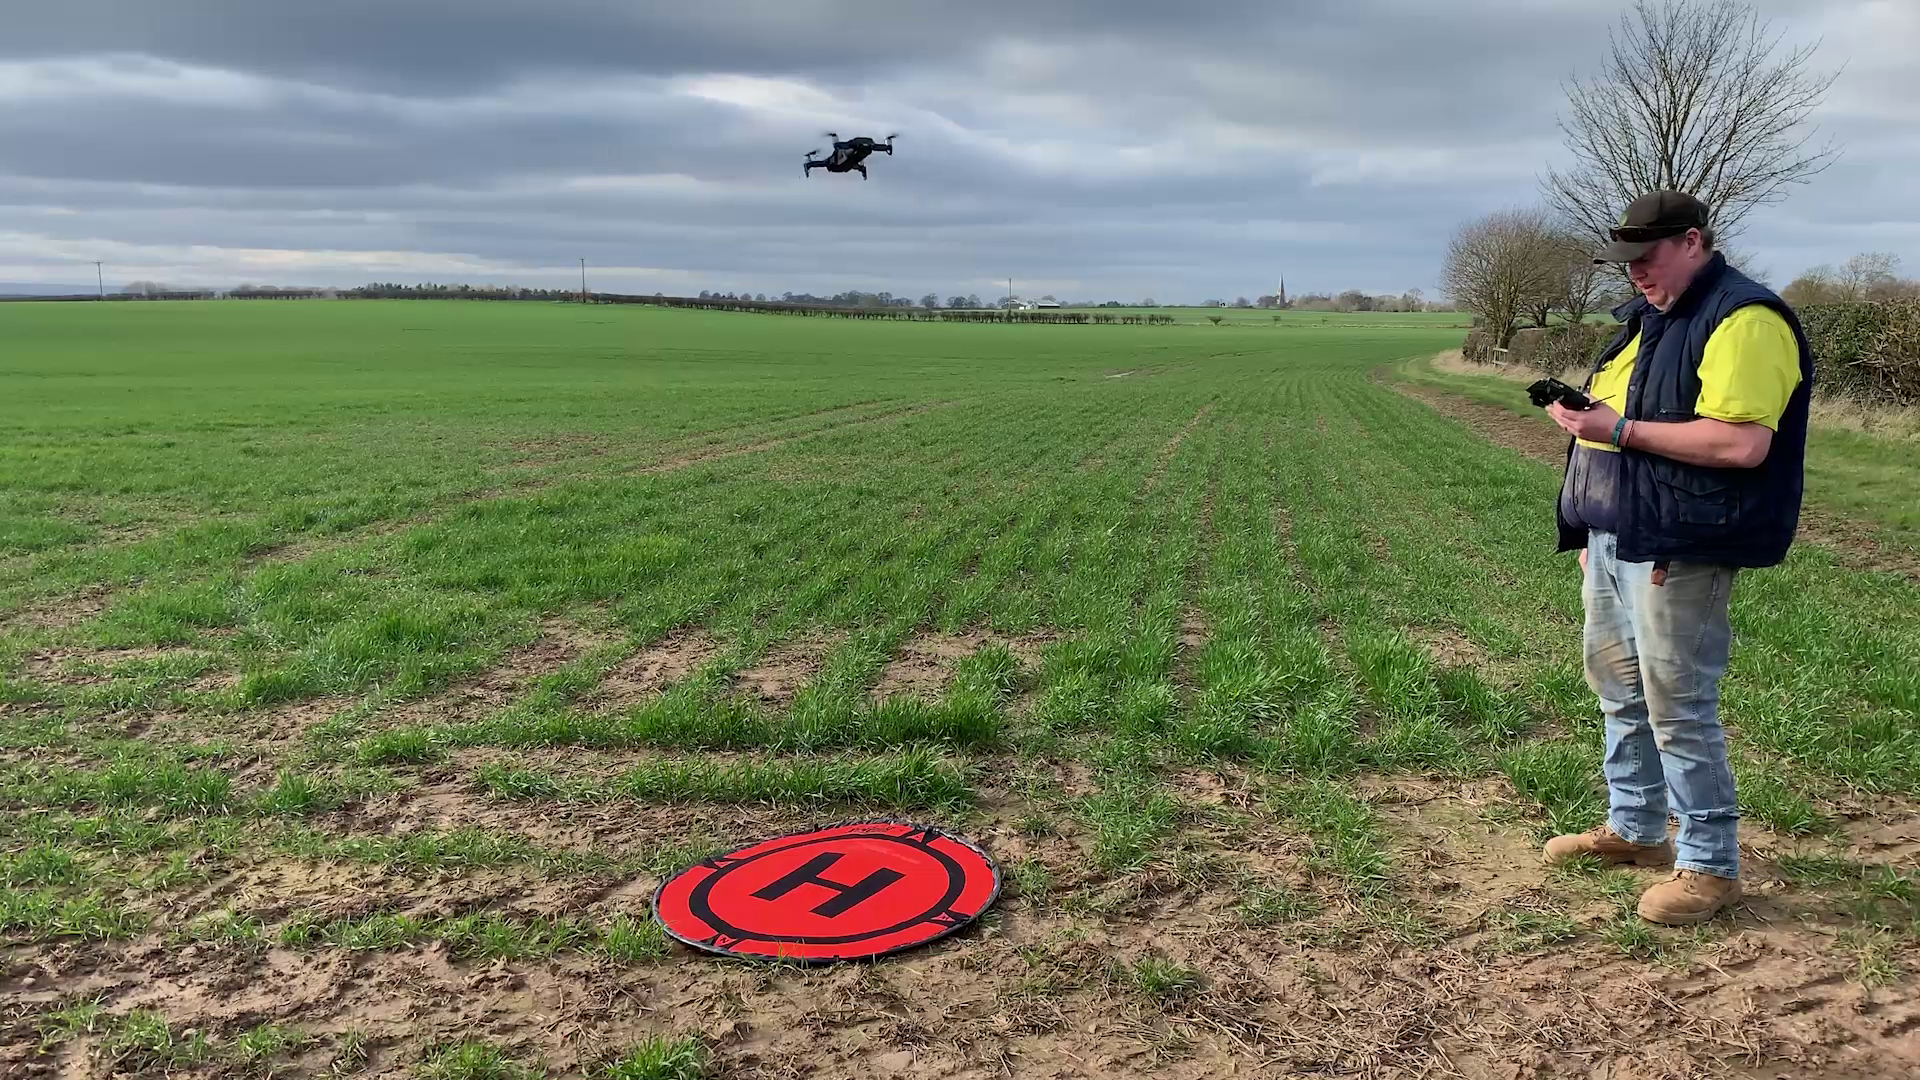 Graham Potter Monitors His Crops with Drones